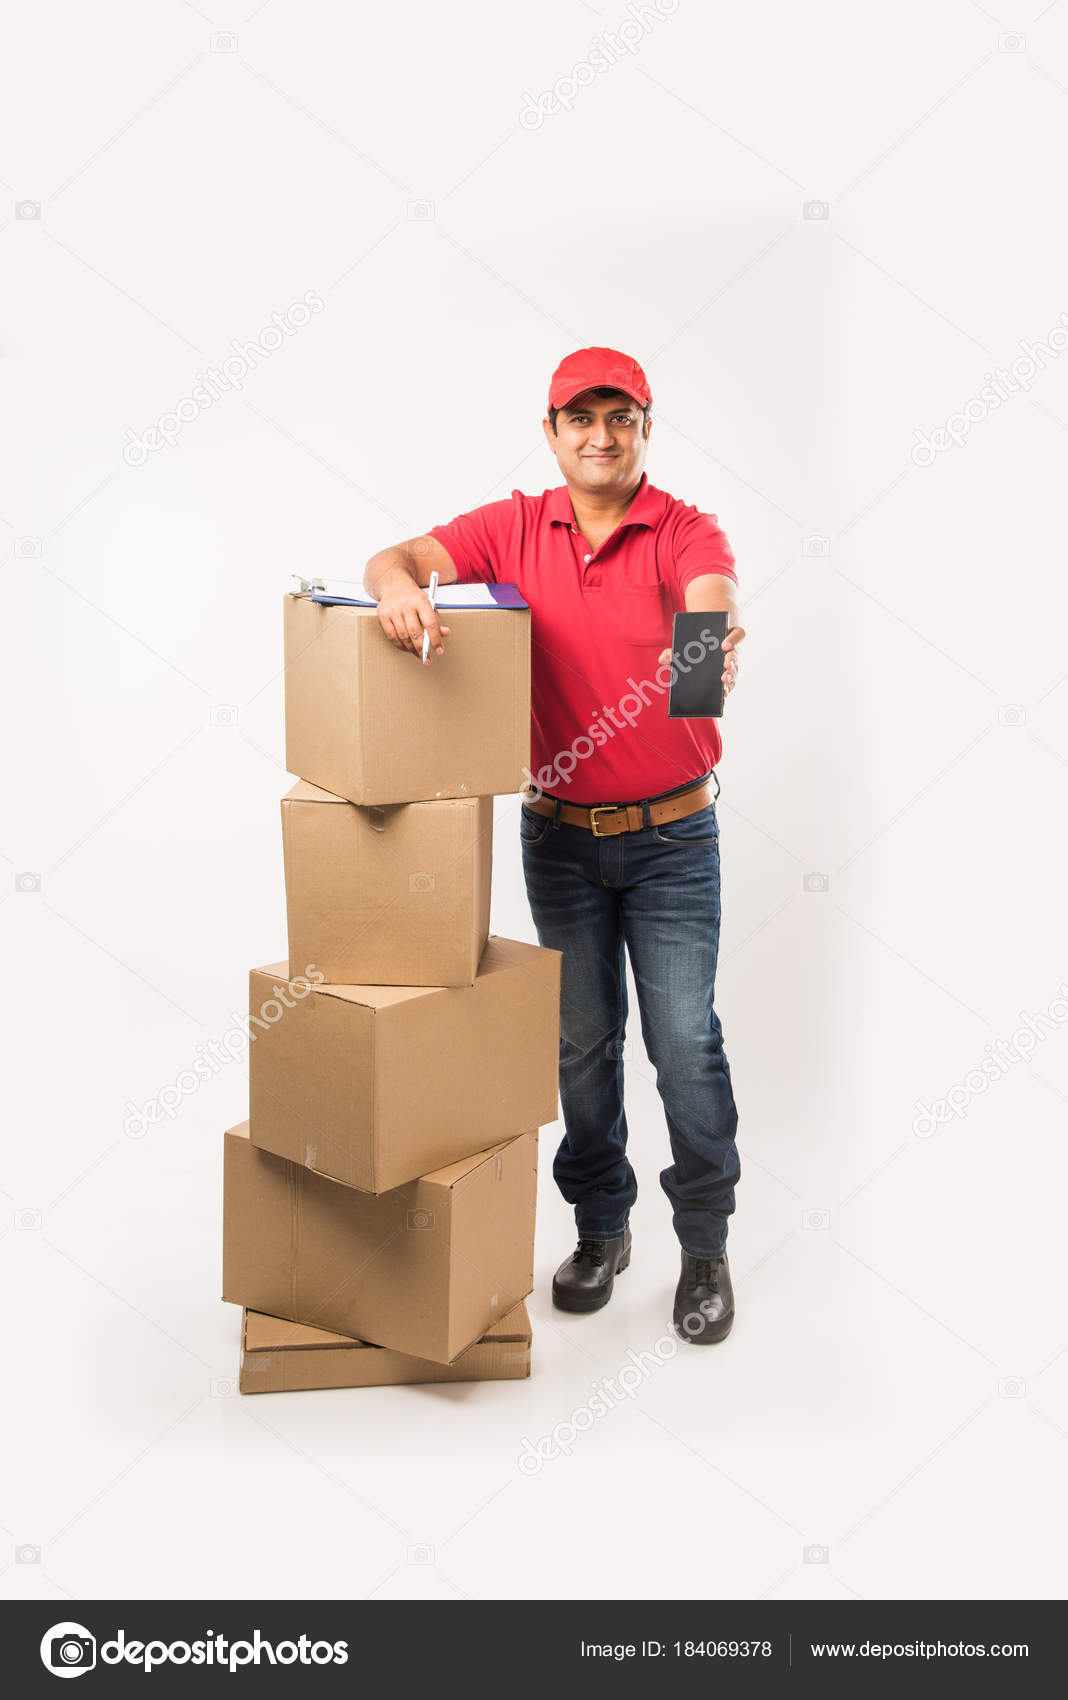 Delivery Concept Portrait Happy Indian Delivery Man Red